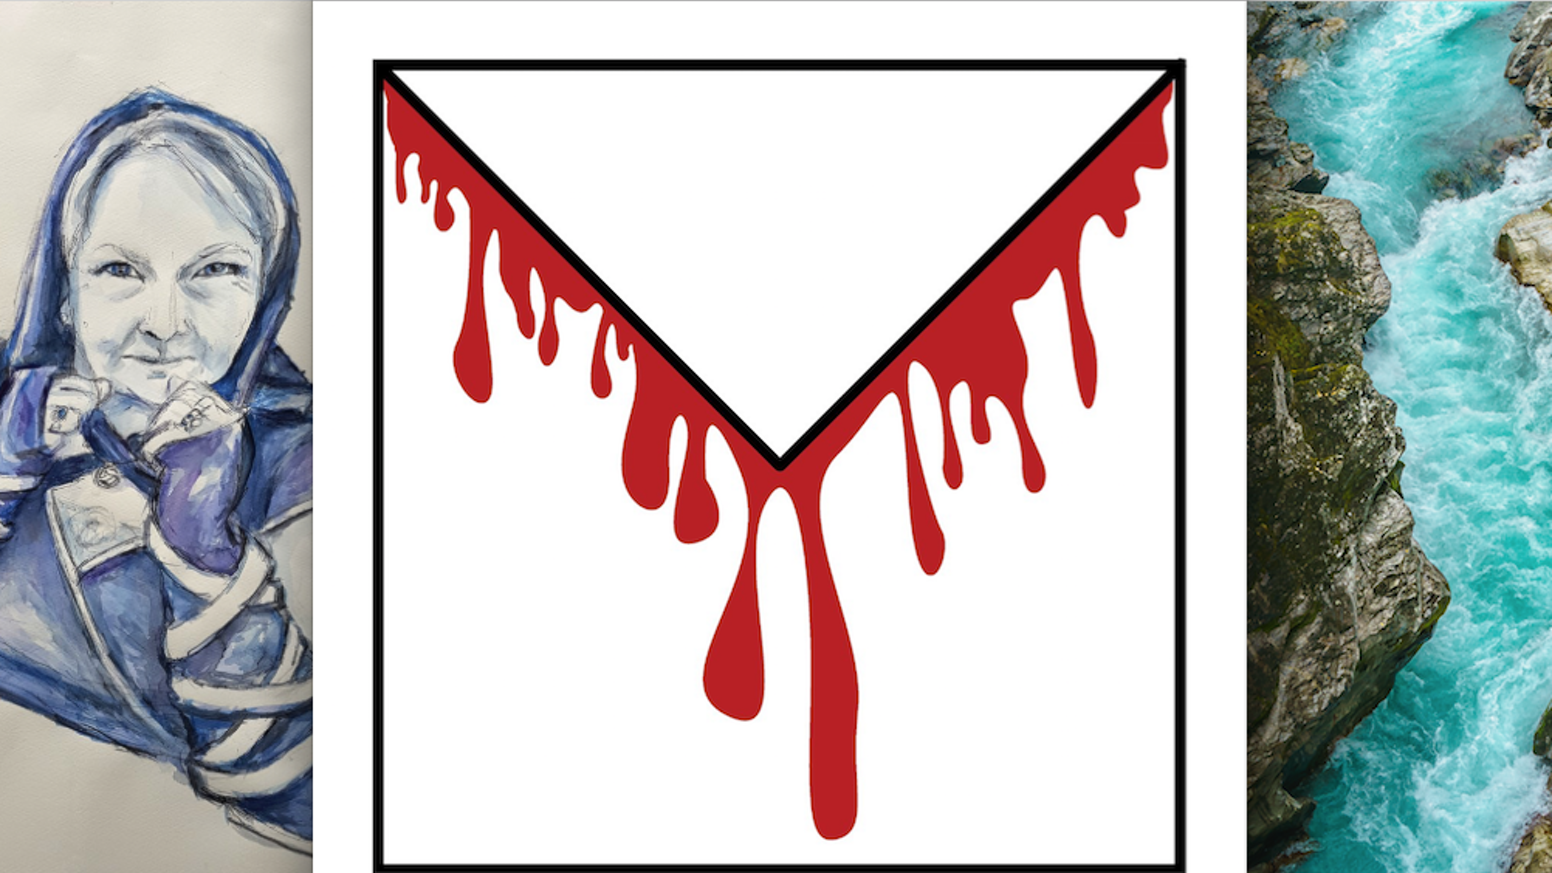 MURDER IN THE MAIL: A BLOODY BIRTHDAY is a mystery told through letters, objects, and artworks posted to you over several weeks.